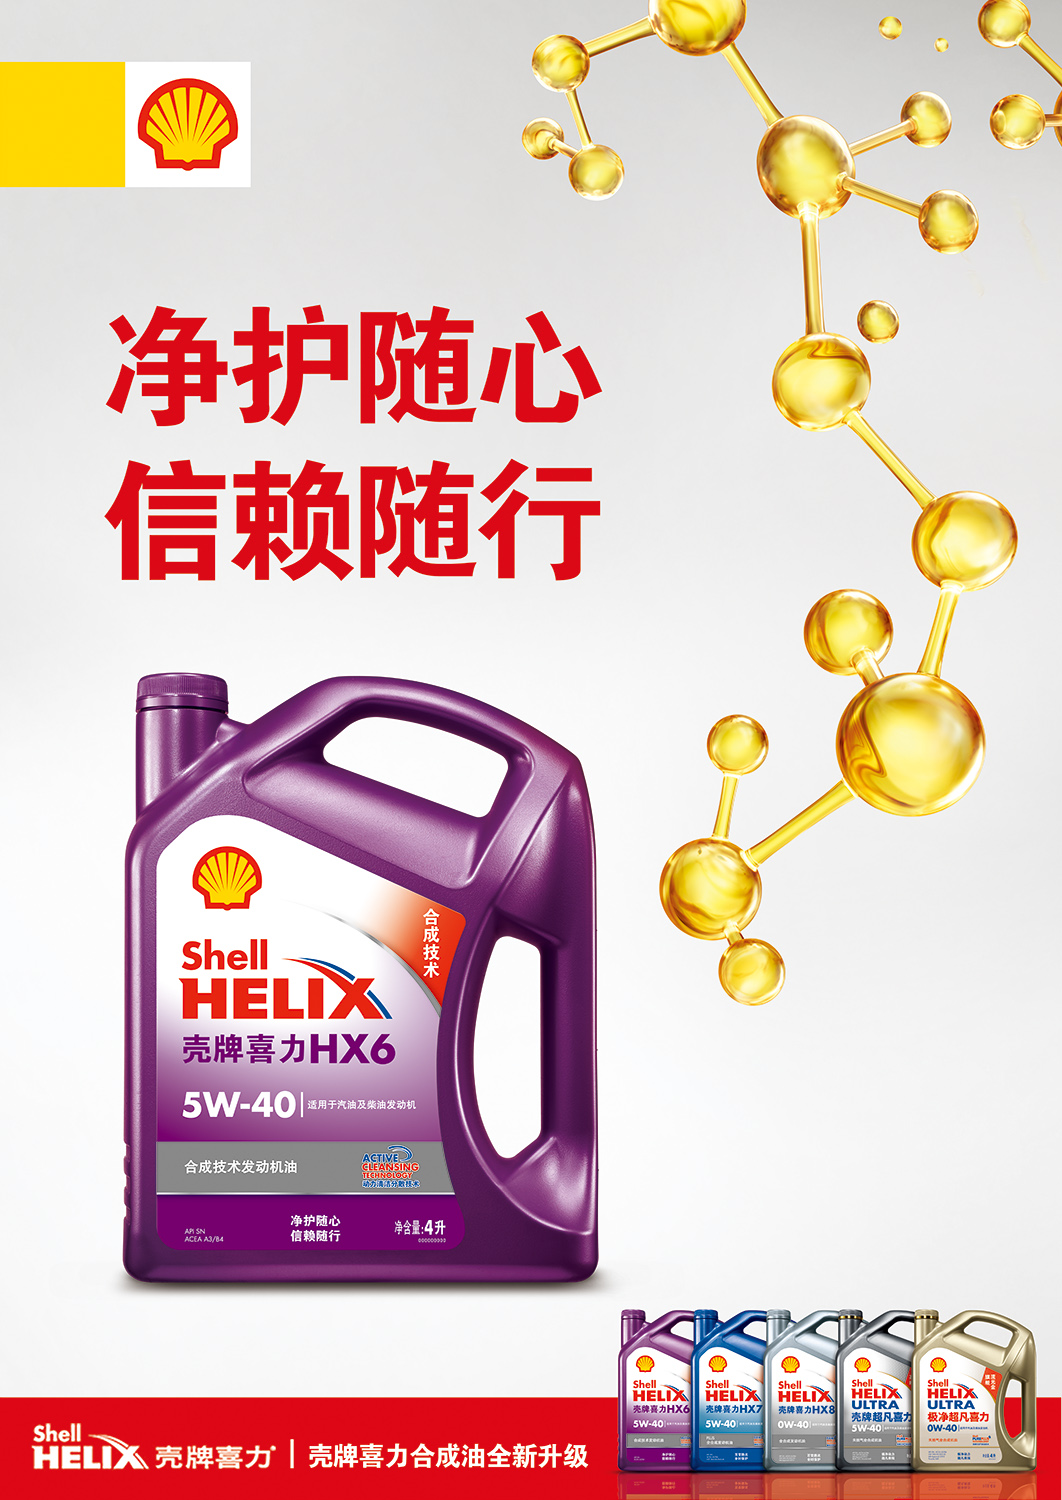 Shell_Product_Purple_V